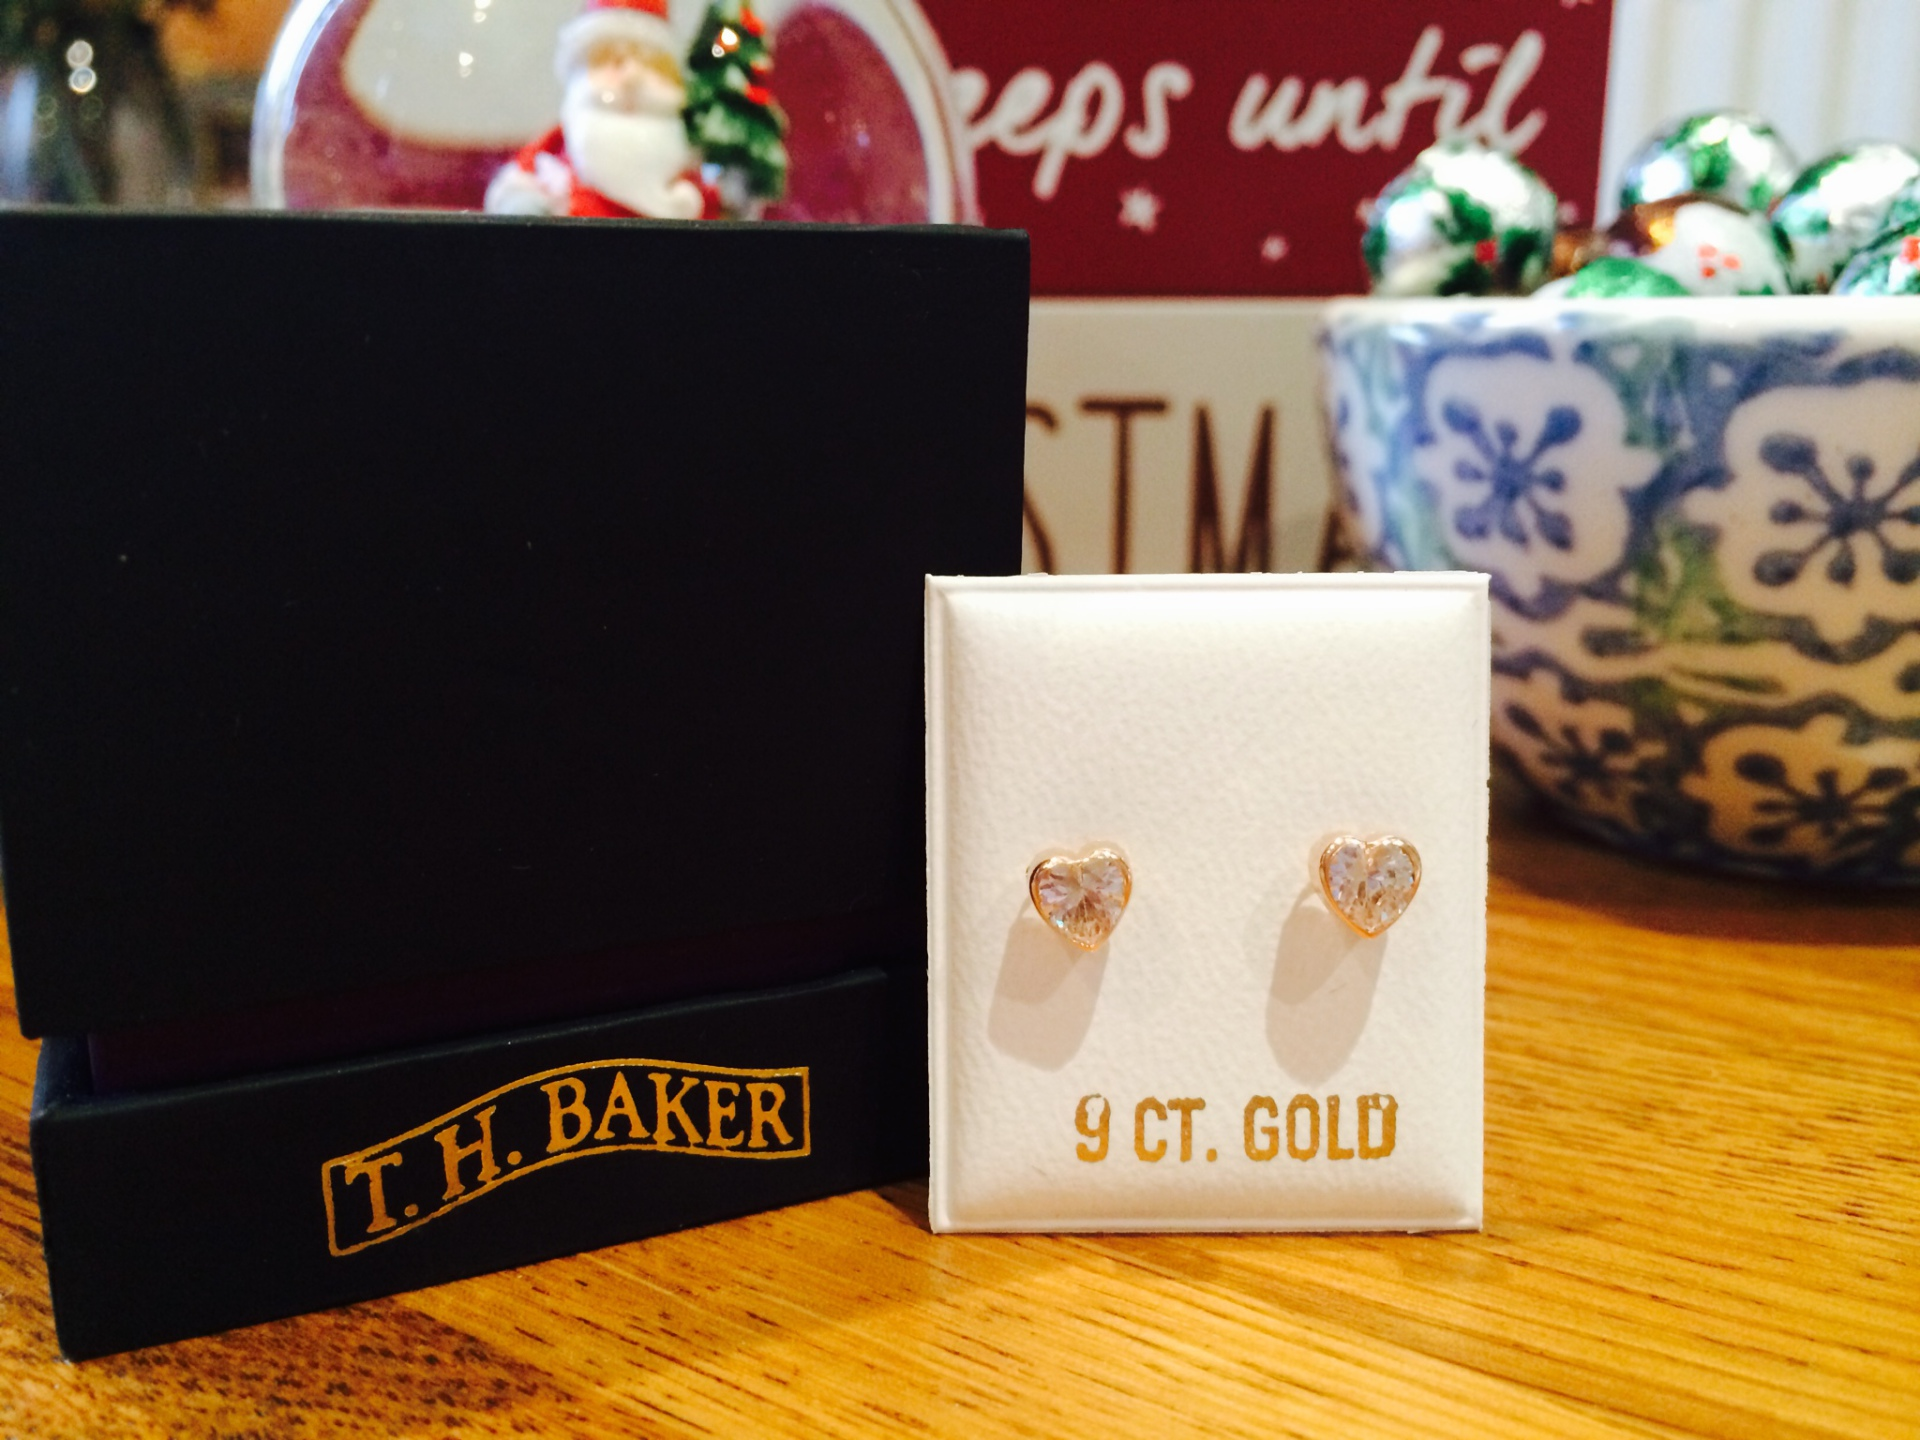 T.H. Baker 9 Carat Gold Earrings